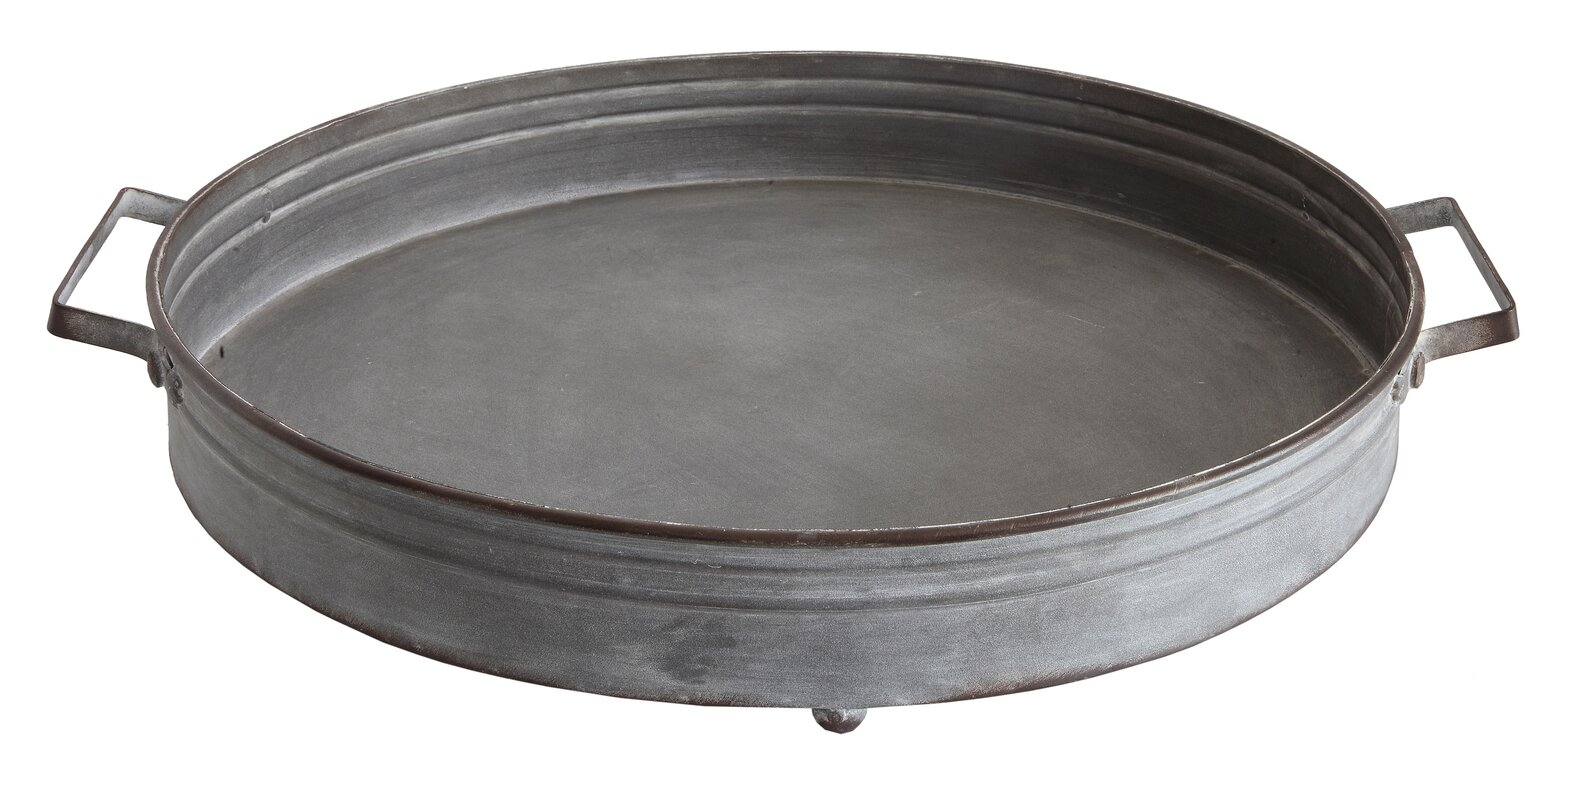 Wadlington Round Decorative Iron Tray with Handle